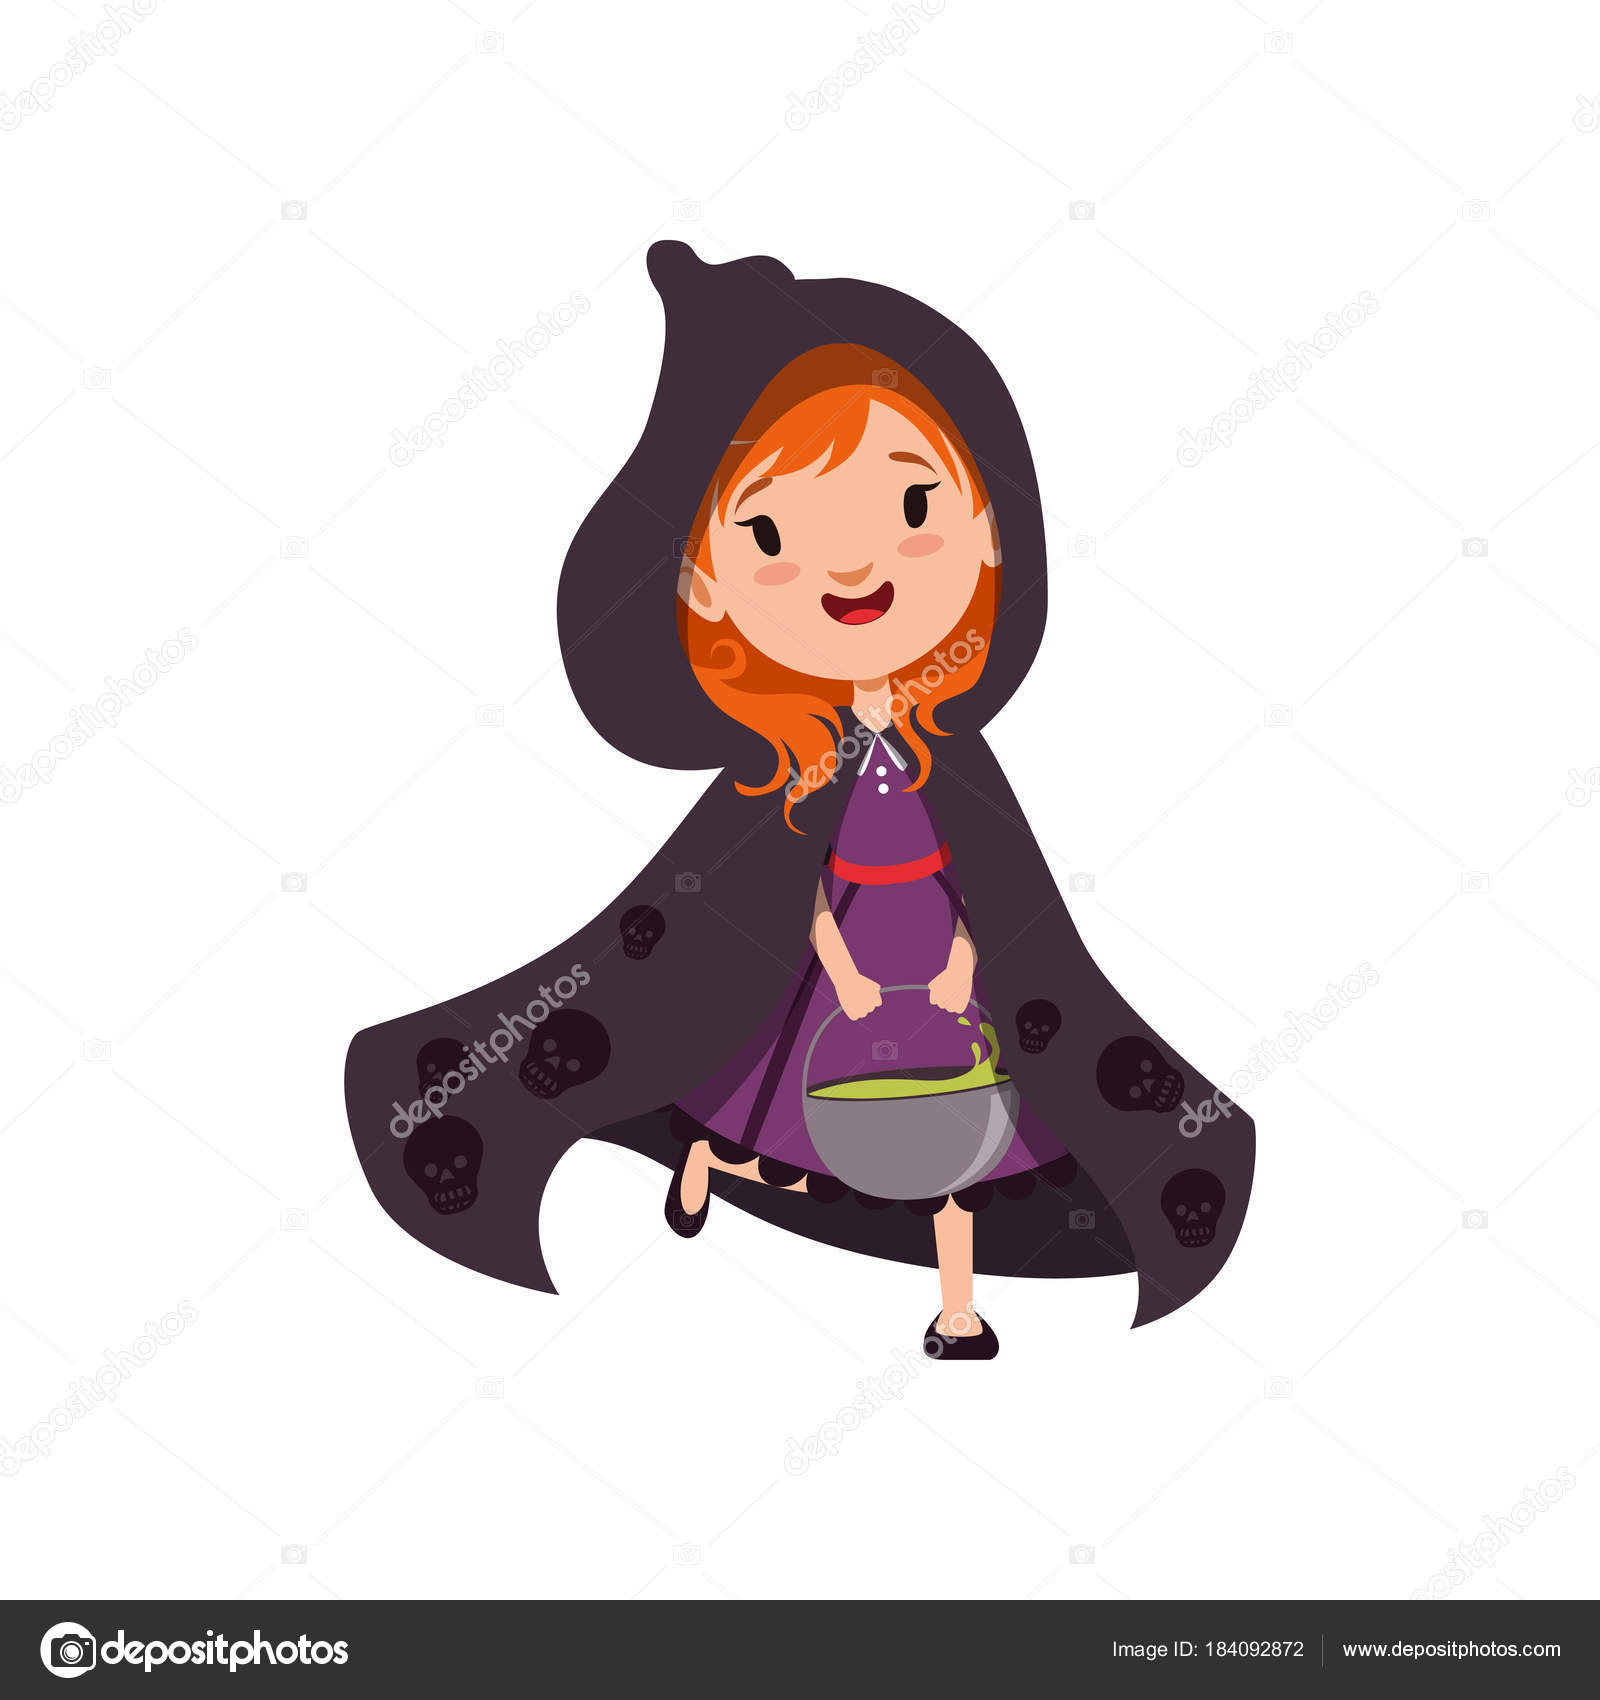 Cartoon Characters With Purple Hair : Cartoon character with red hair and purple dress